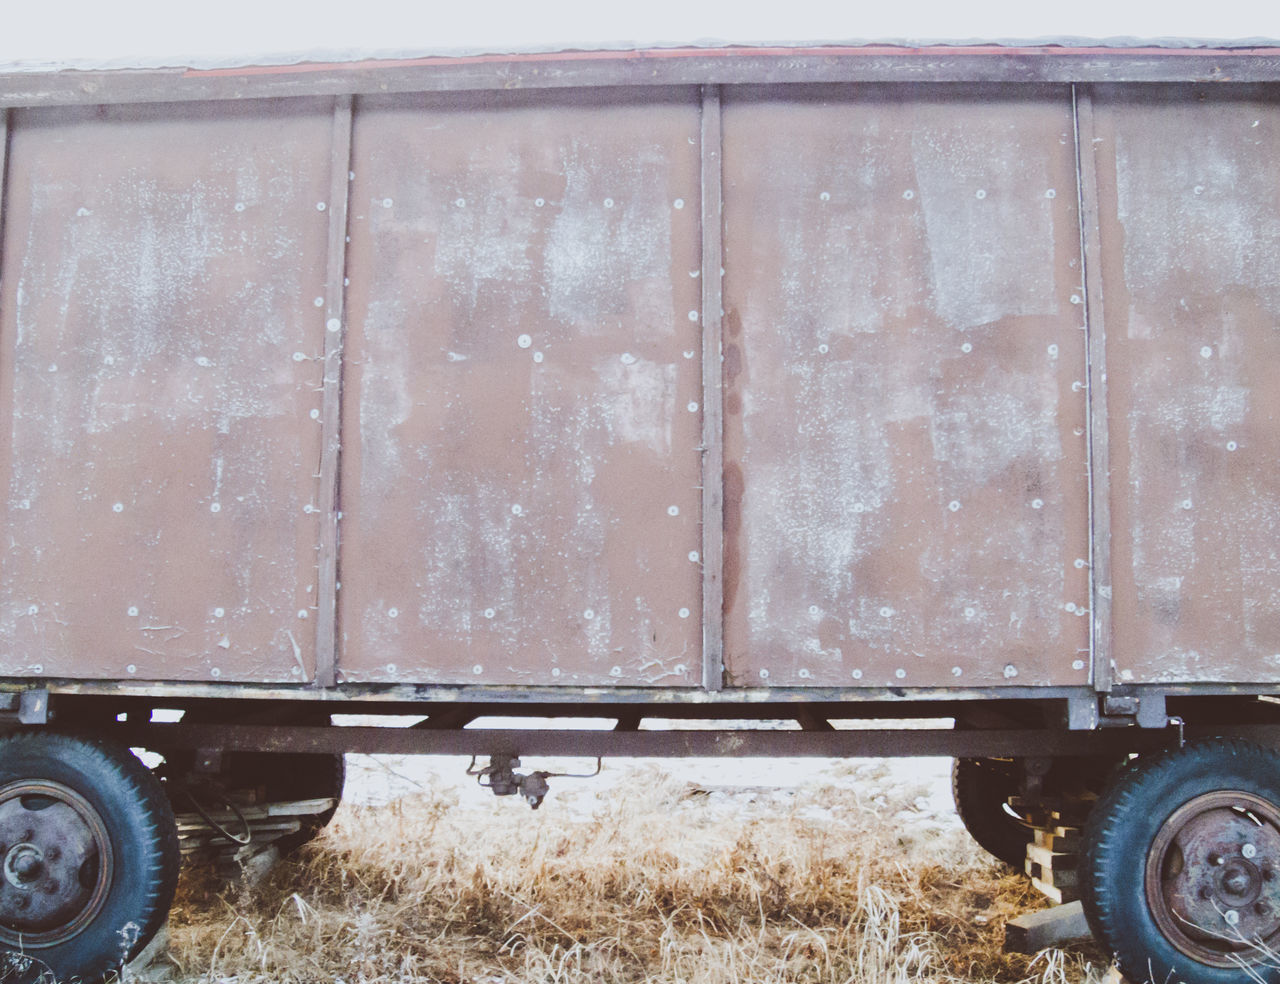 Side view of an old wagon standing in the field in winter. Cart Circus Covered Wagon Freight Transportation Obsolete Old Old-fashioned Outdoors Plank Retro Styled Rural Scene Transportation Travel Wagon  Wheels Wood